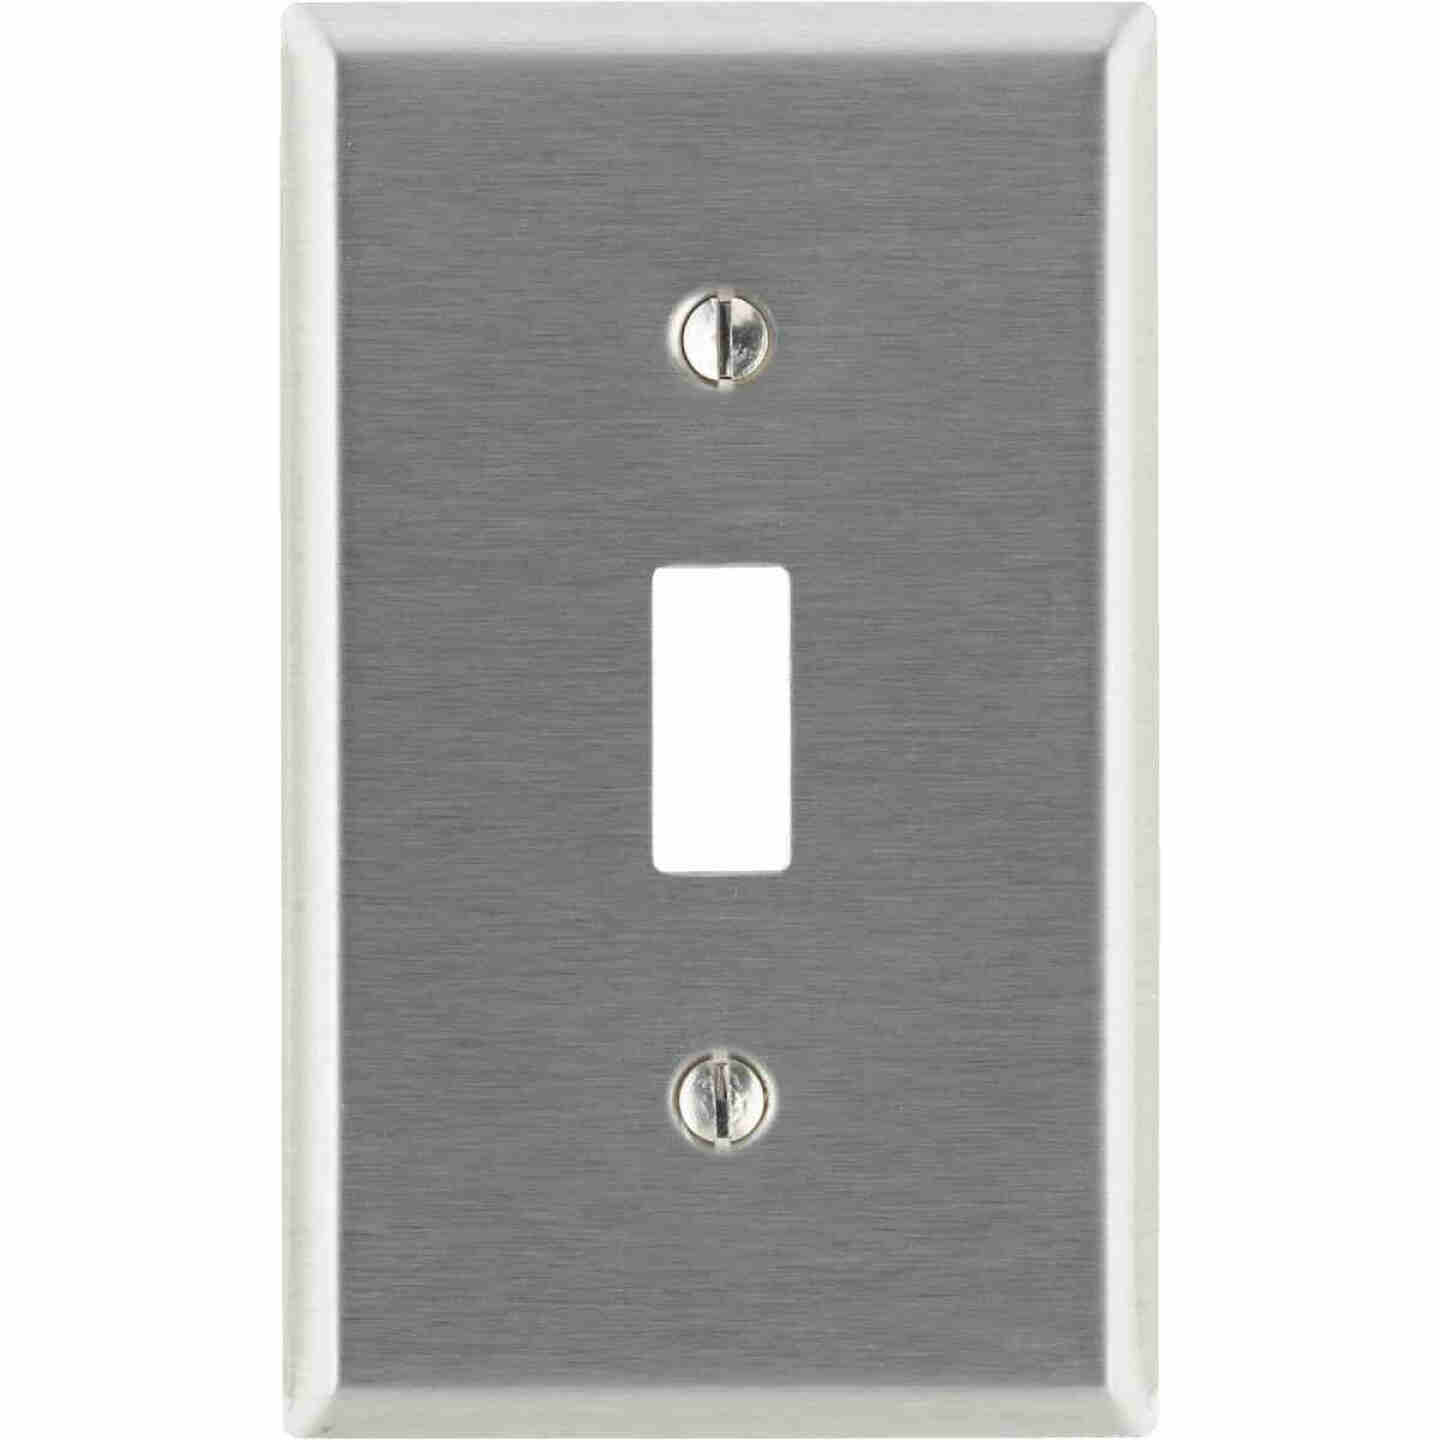 Leviton 1-Gang Stainless Steel Toggle Switch Wall Plate Image 1